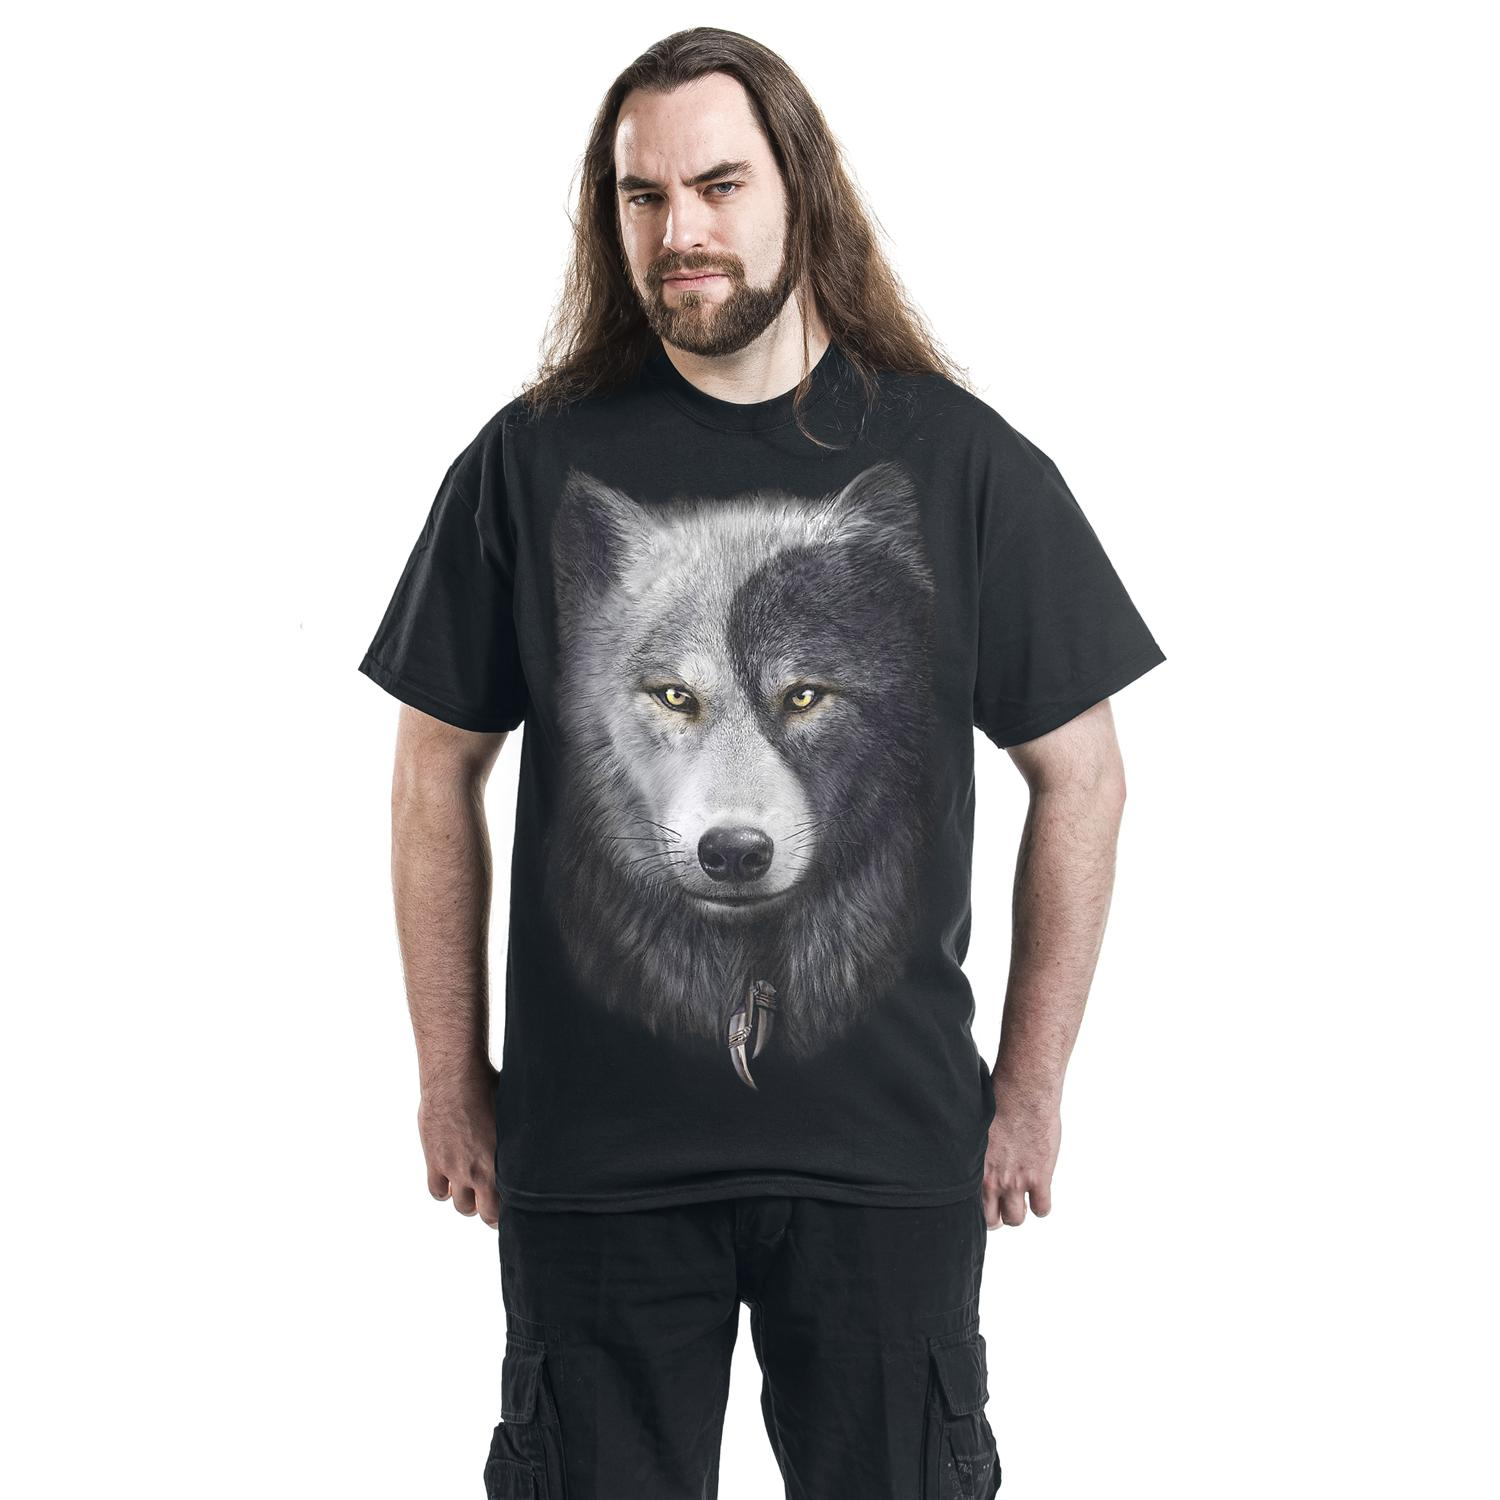 Wolf Chi T-shirt Design man